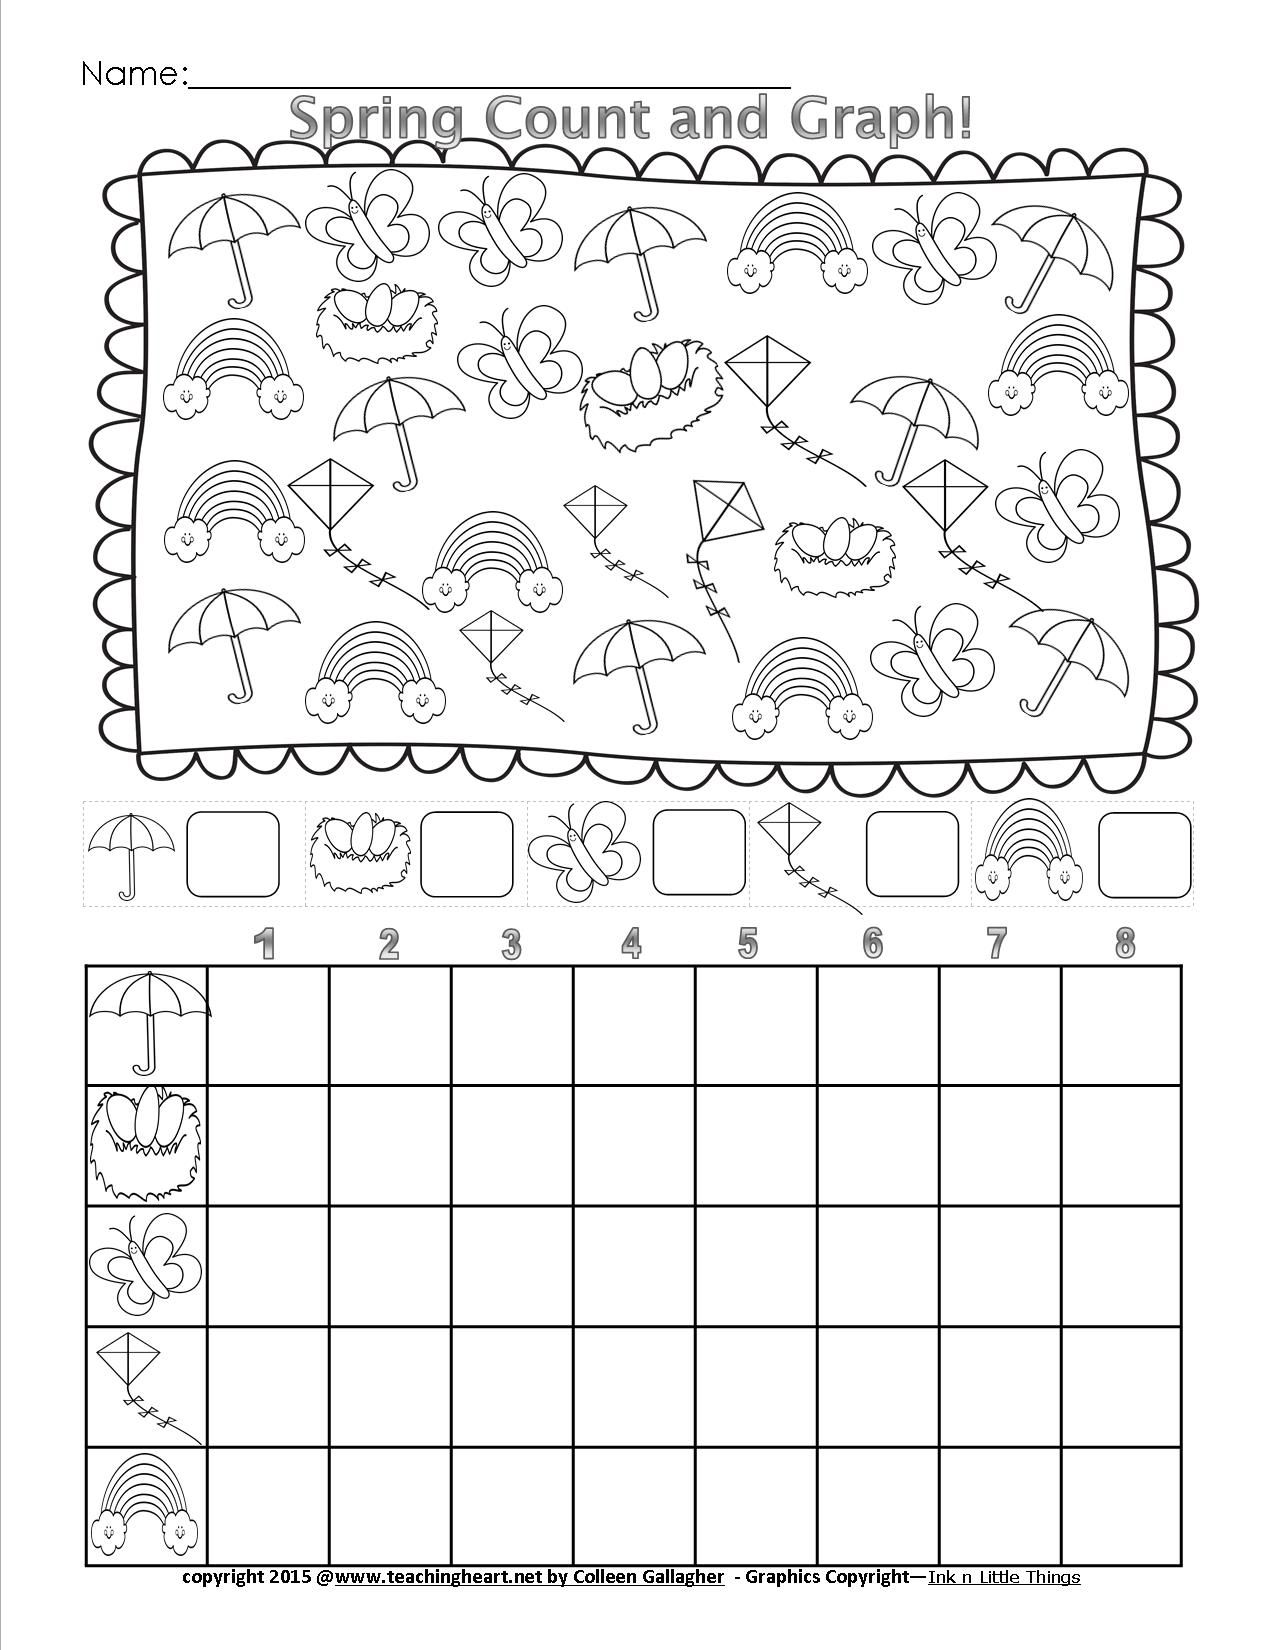 Worksheet Graphing For Kindergarten 1000 images about graph worksheet on pinterest worksheets for kindergarten count and back to school worksheets